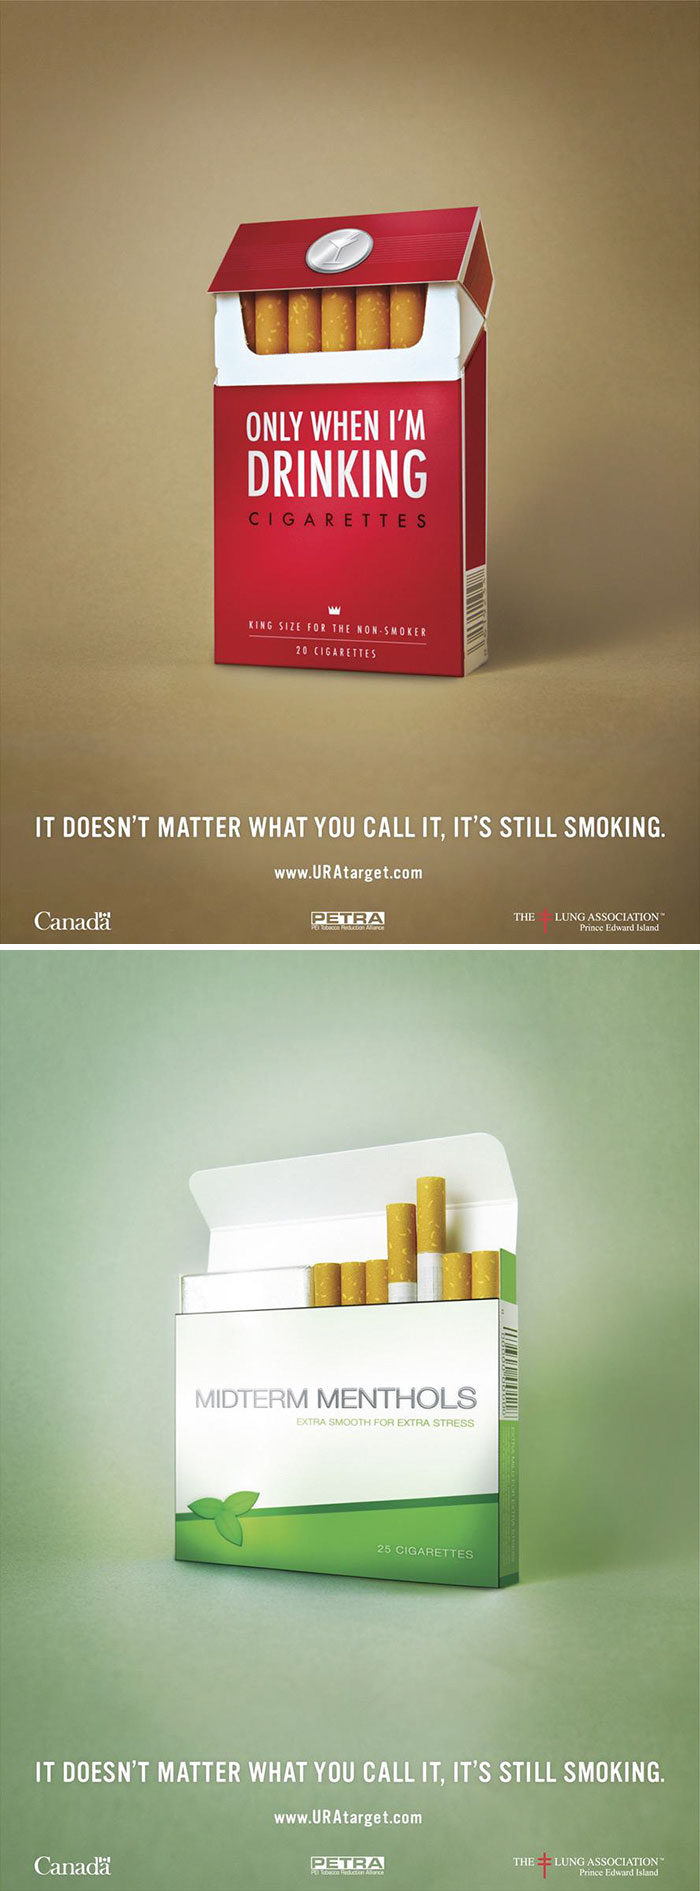 creative-anti-smoking-ads-62-583440624fe7f__700